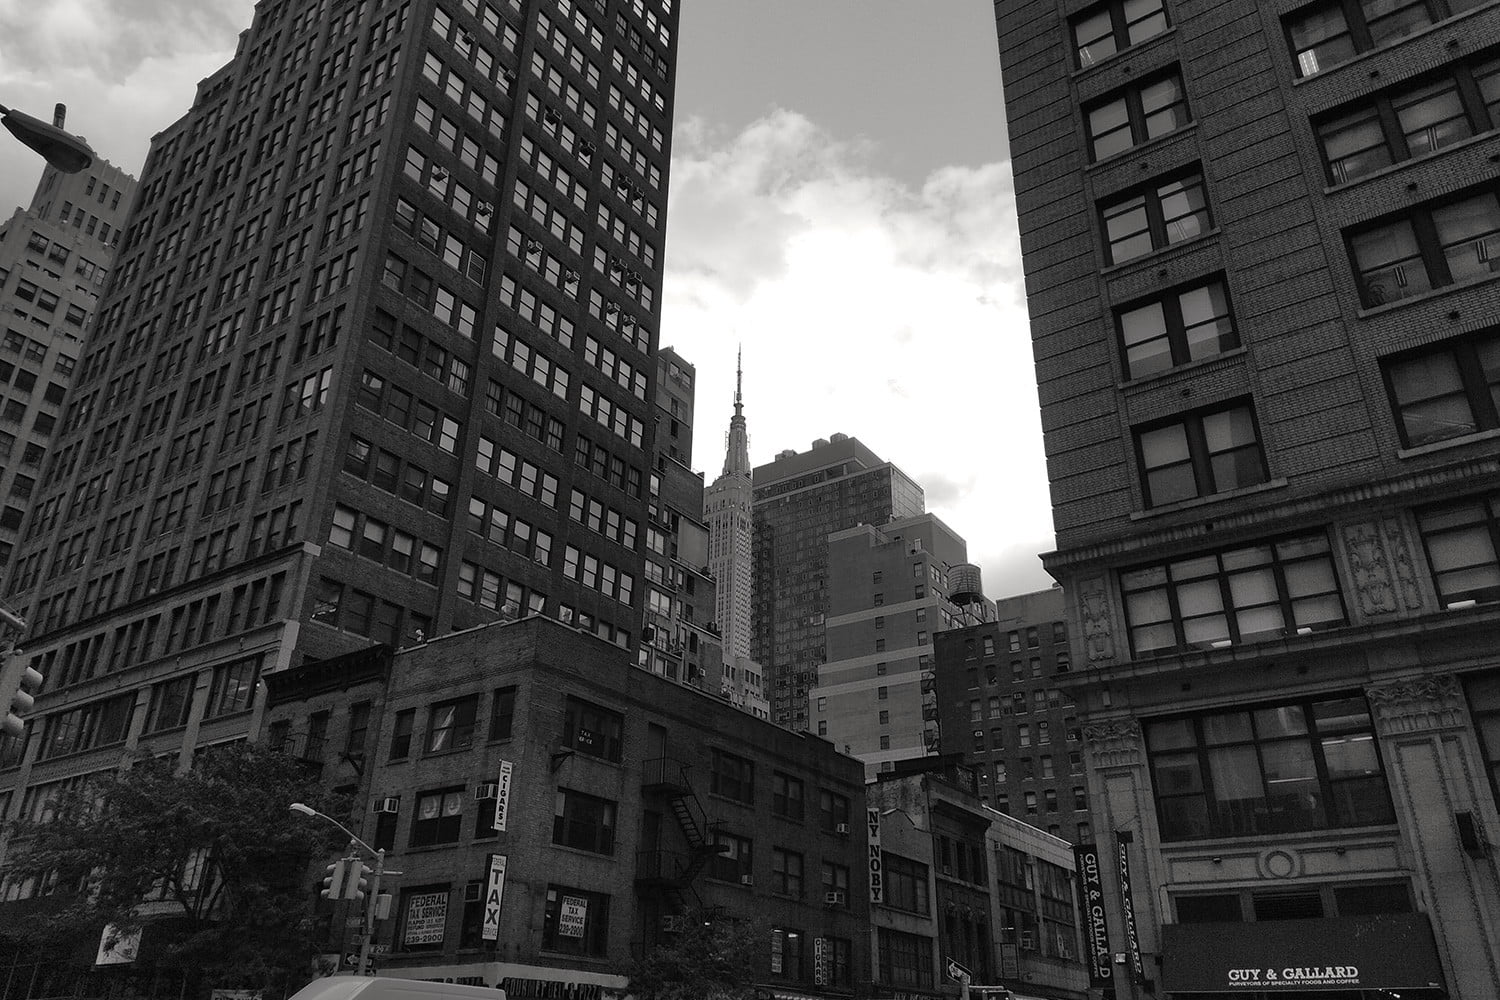 Essential Phone review camera samples nyc buildings bw